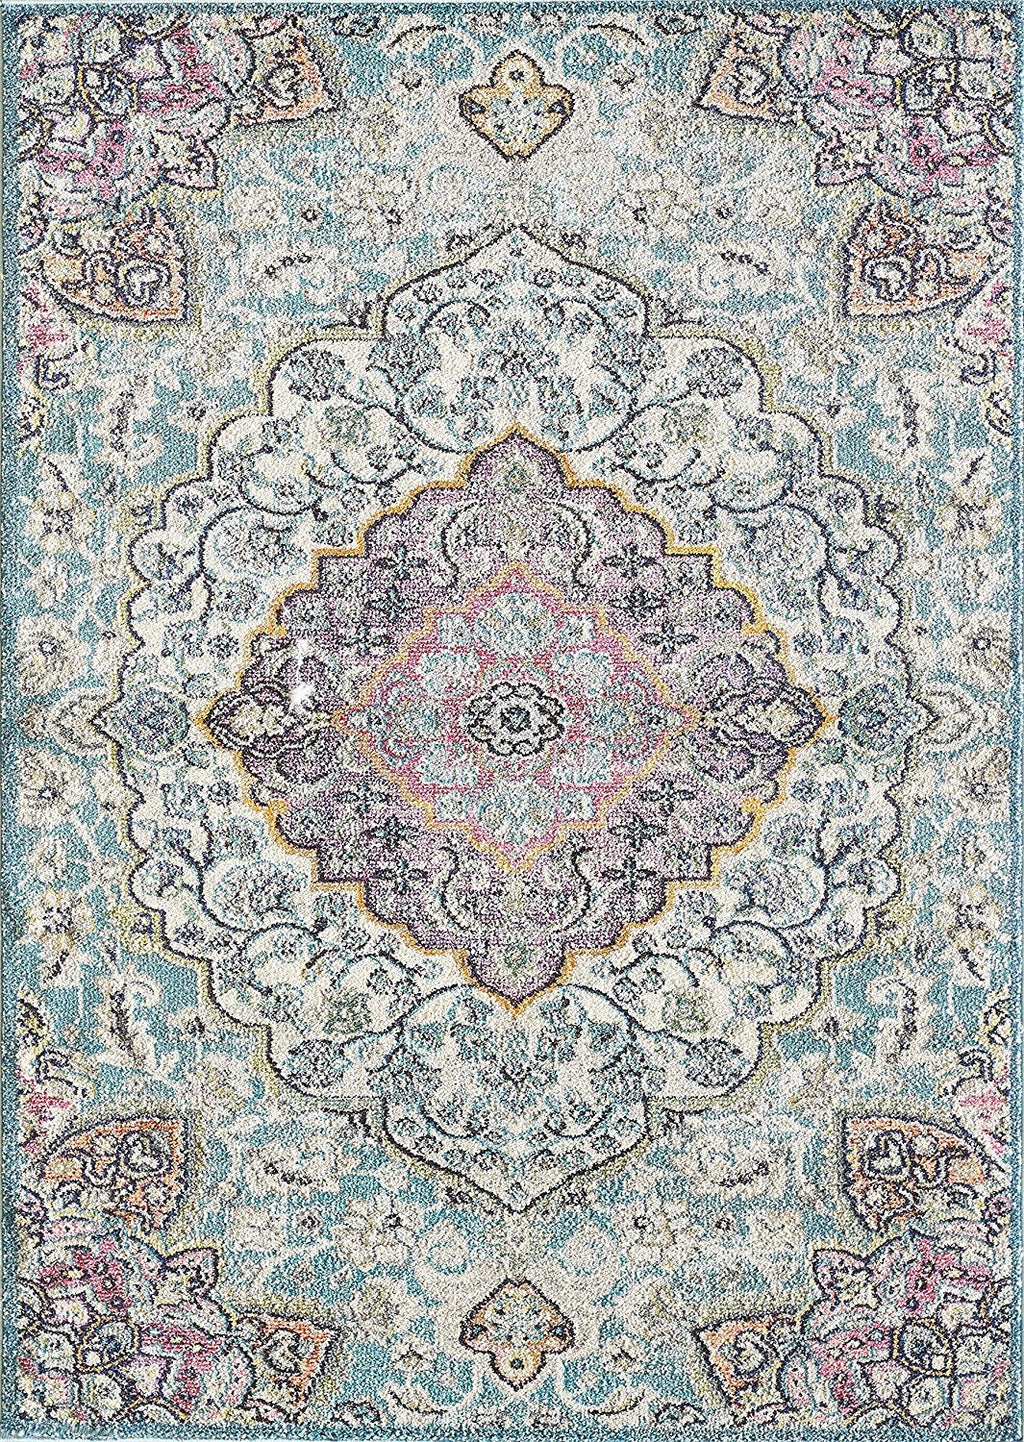 Faded Distressed Contemporary Vintage Persian Area Rug Aqua Blue/